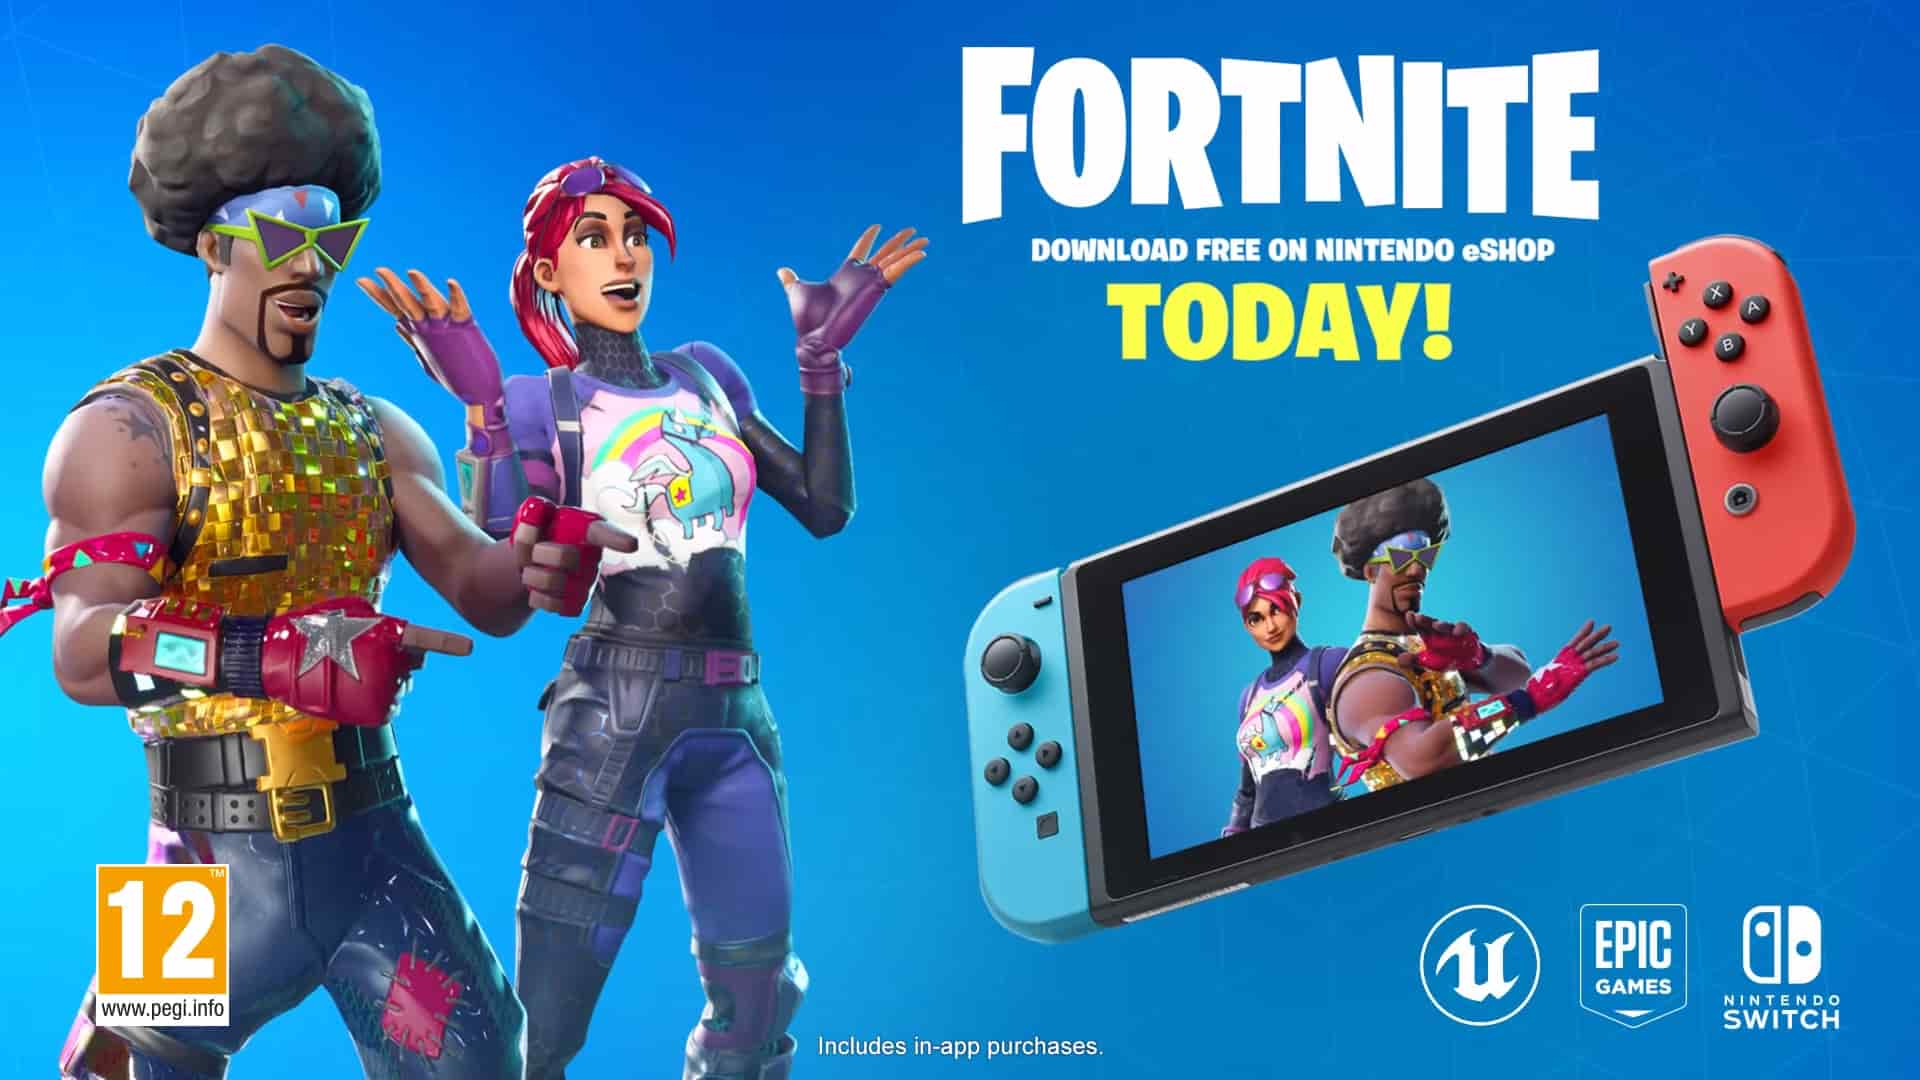 Fortnite Switch Download Now Live... But There's a Big Problem